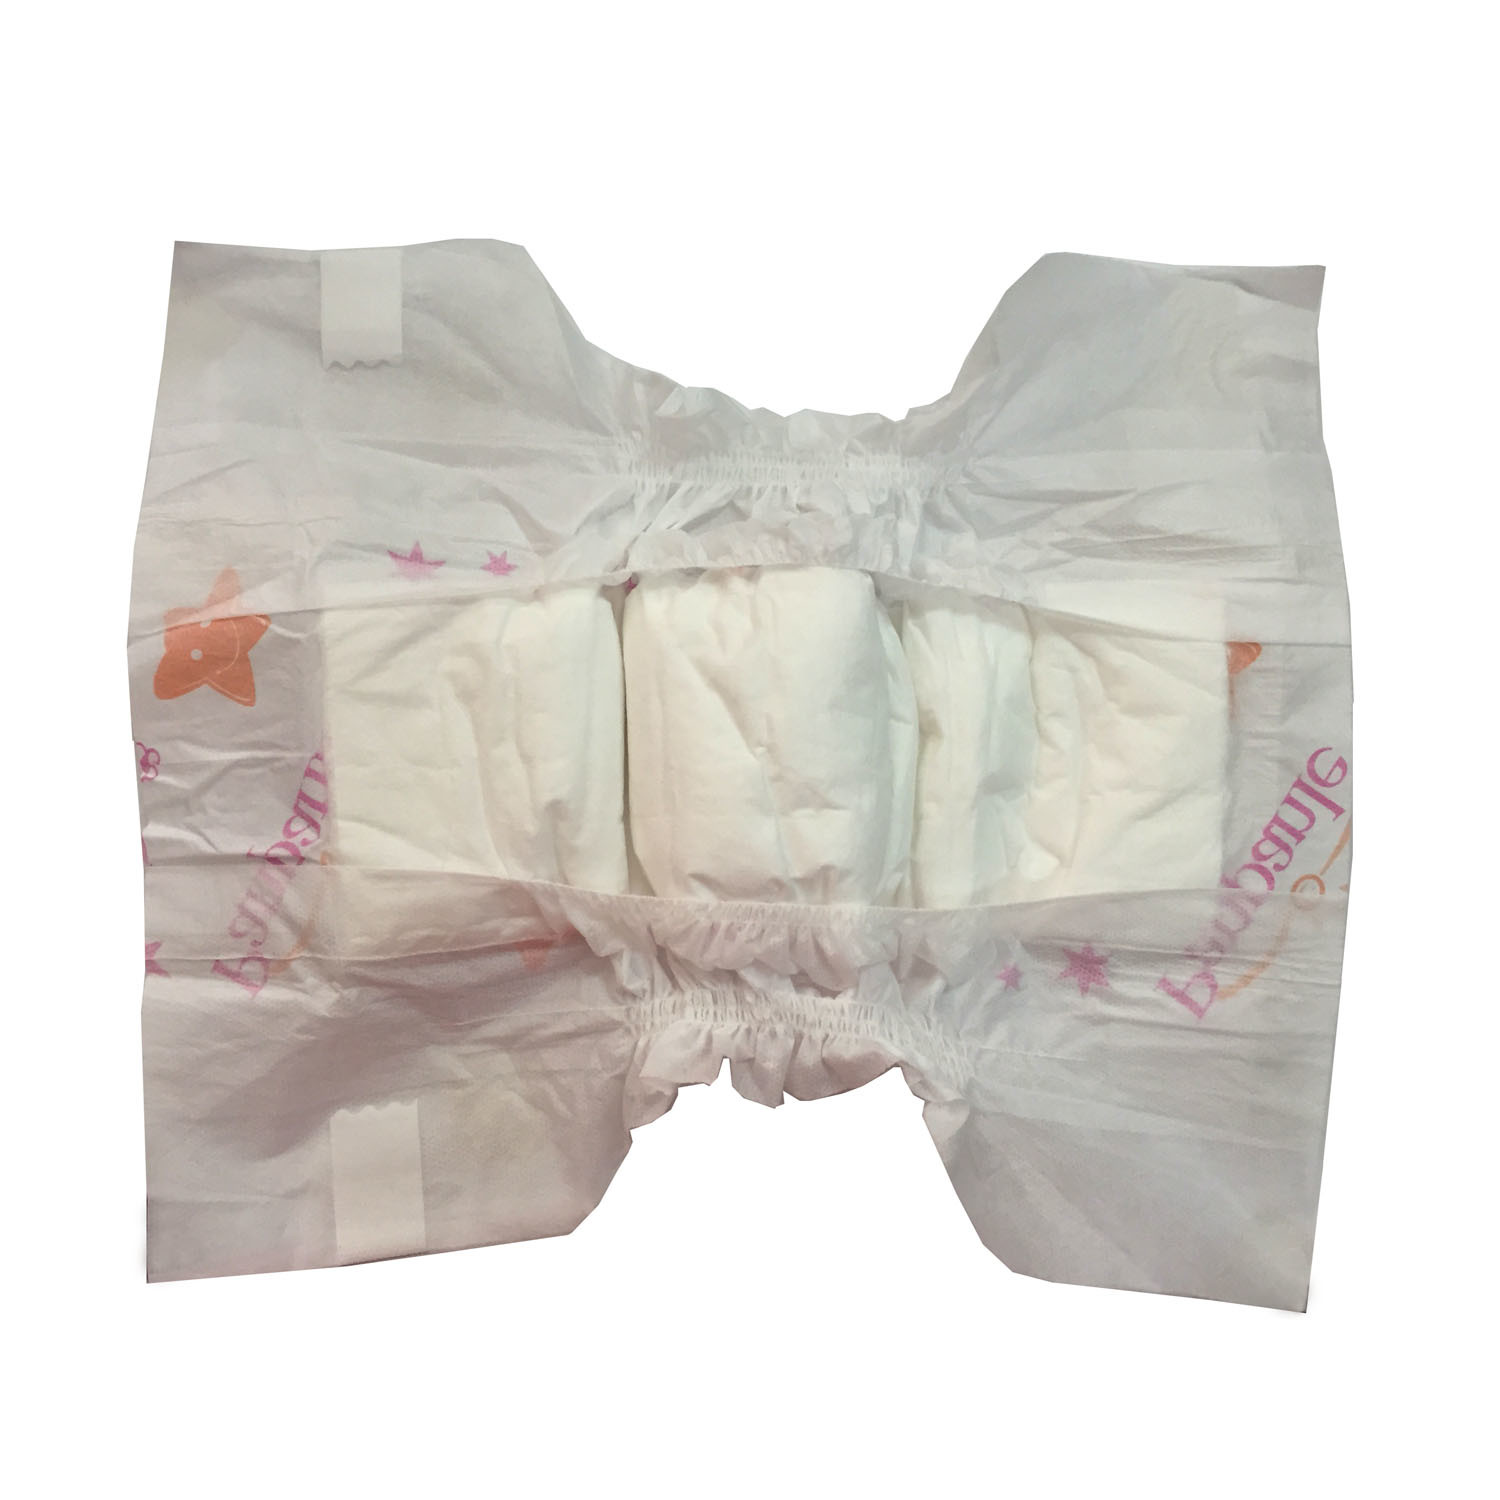 Polybag Package Type Baby Diaper Disposable Good Quality Nappy